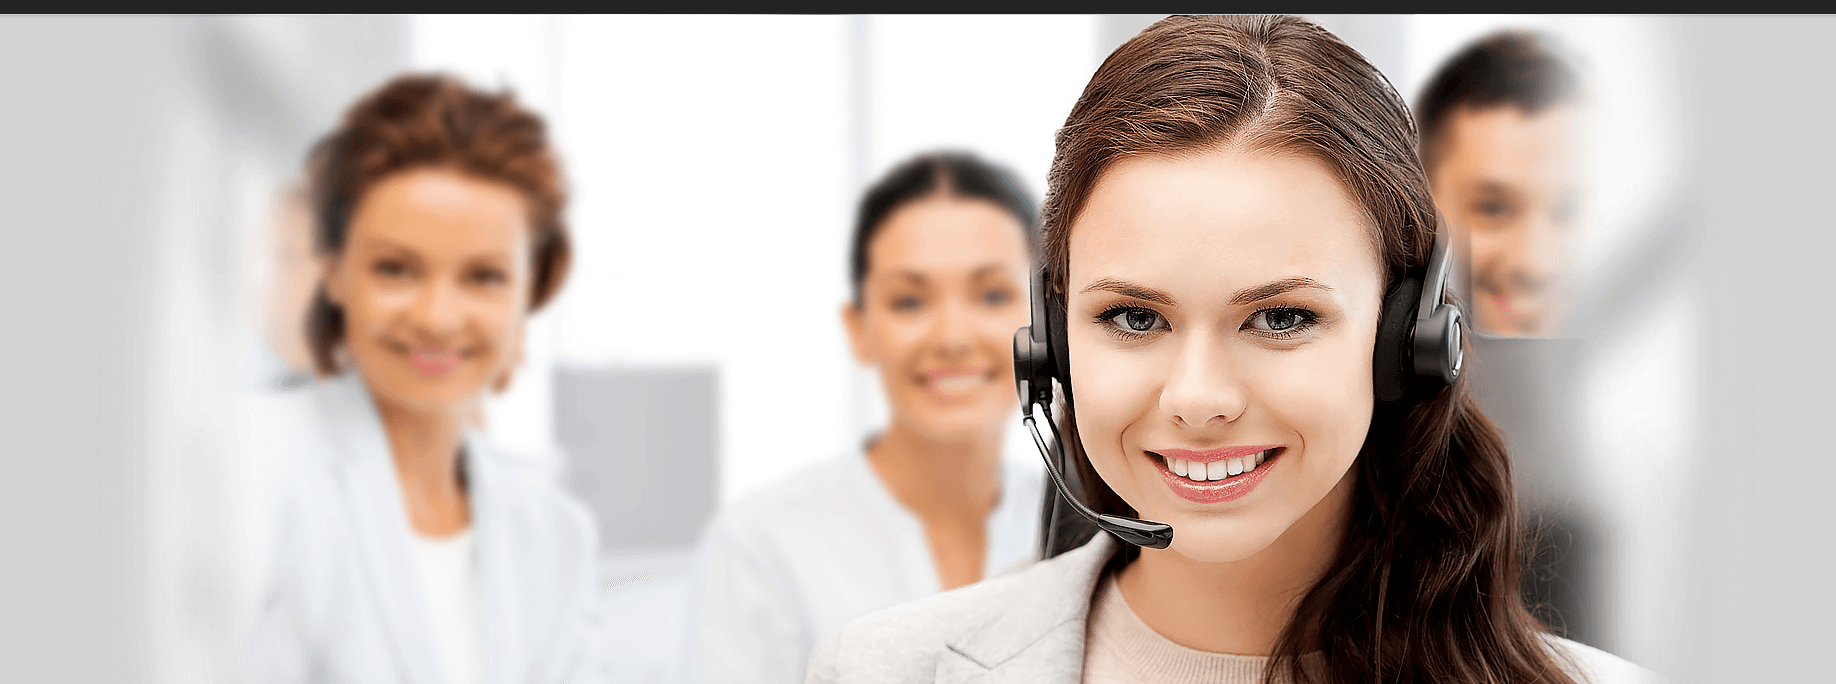 call center alicante Telemarketing en Alicante   Call center en Alicante